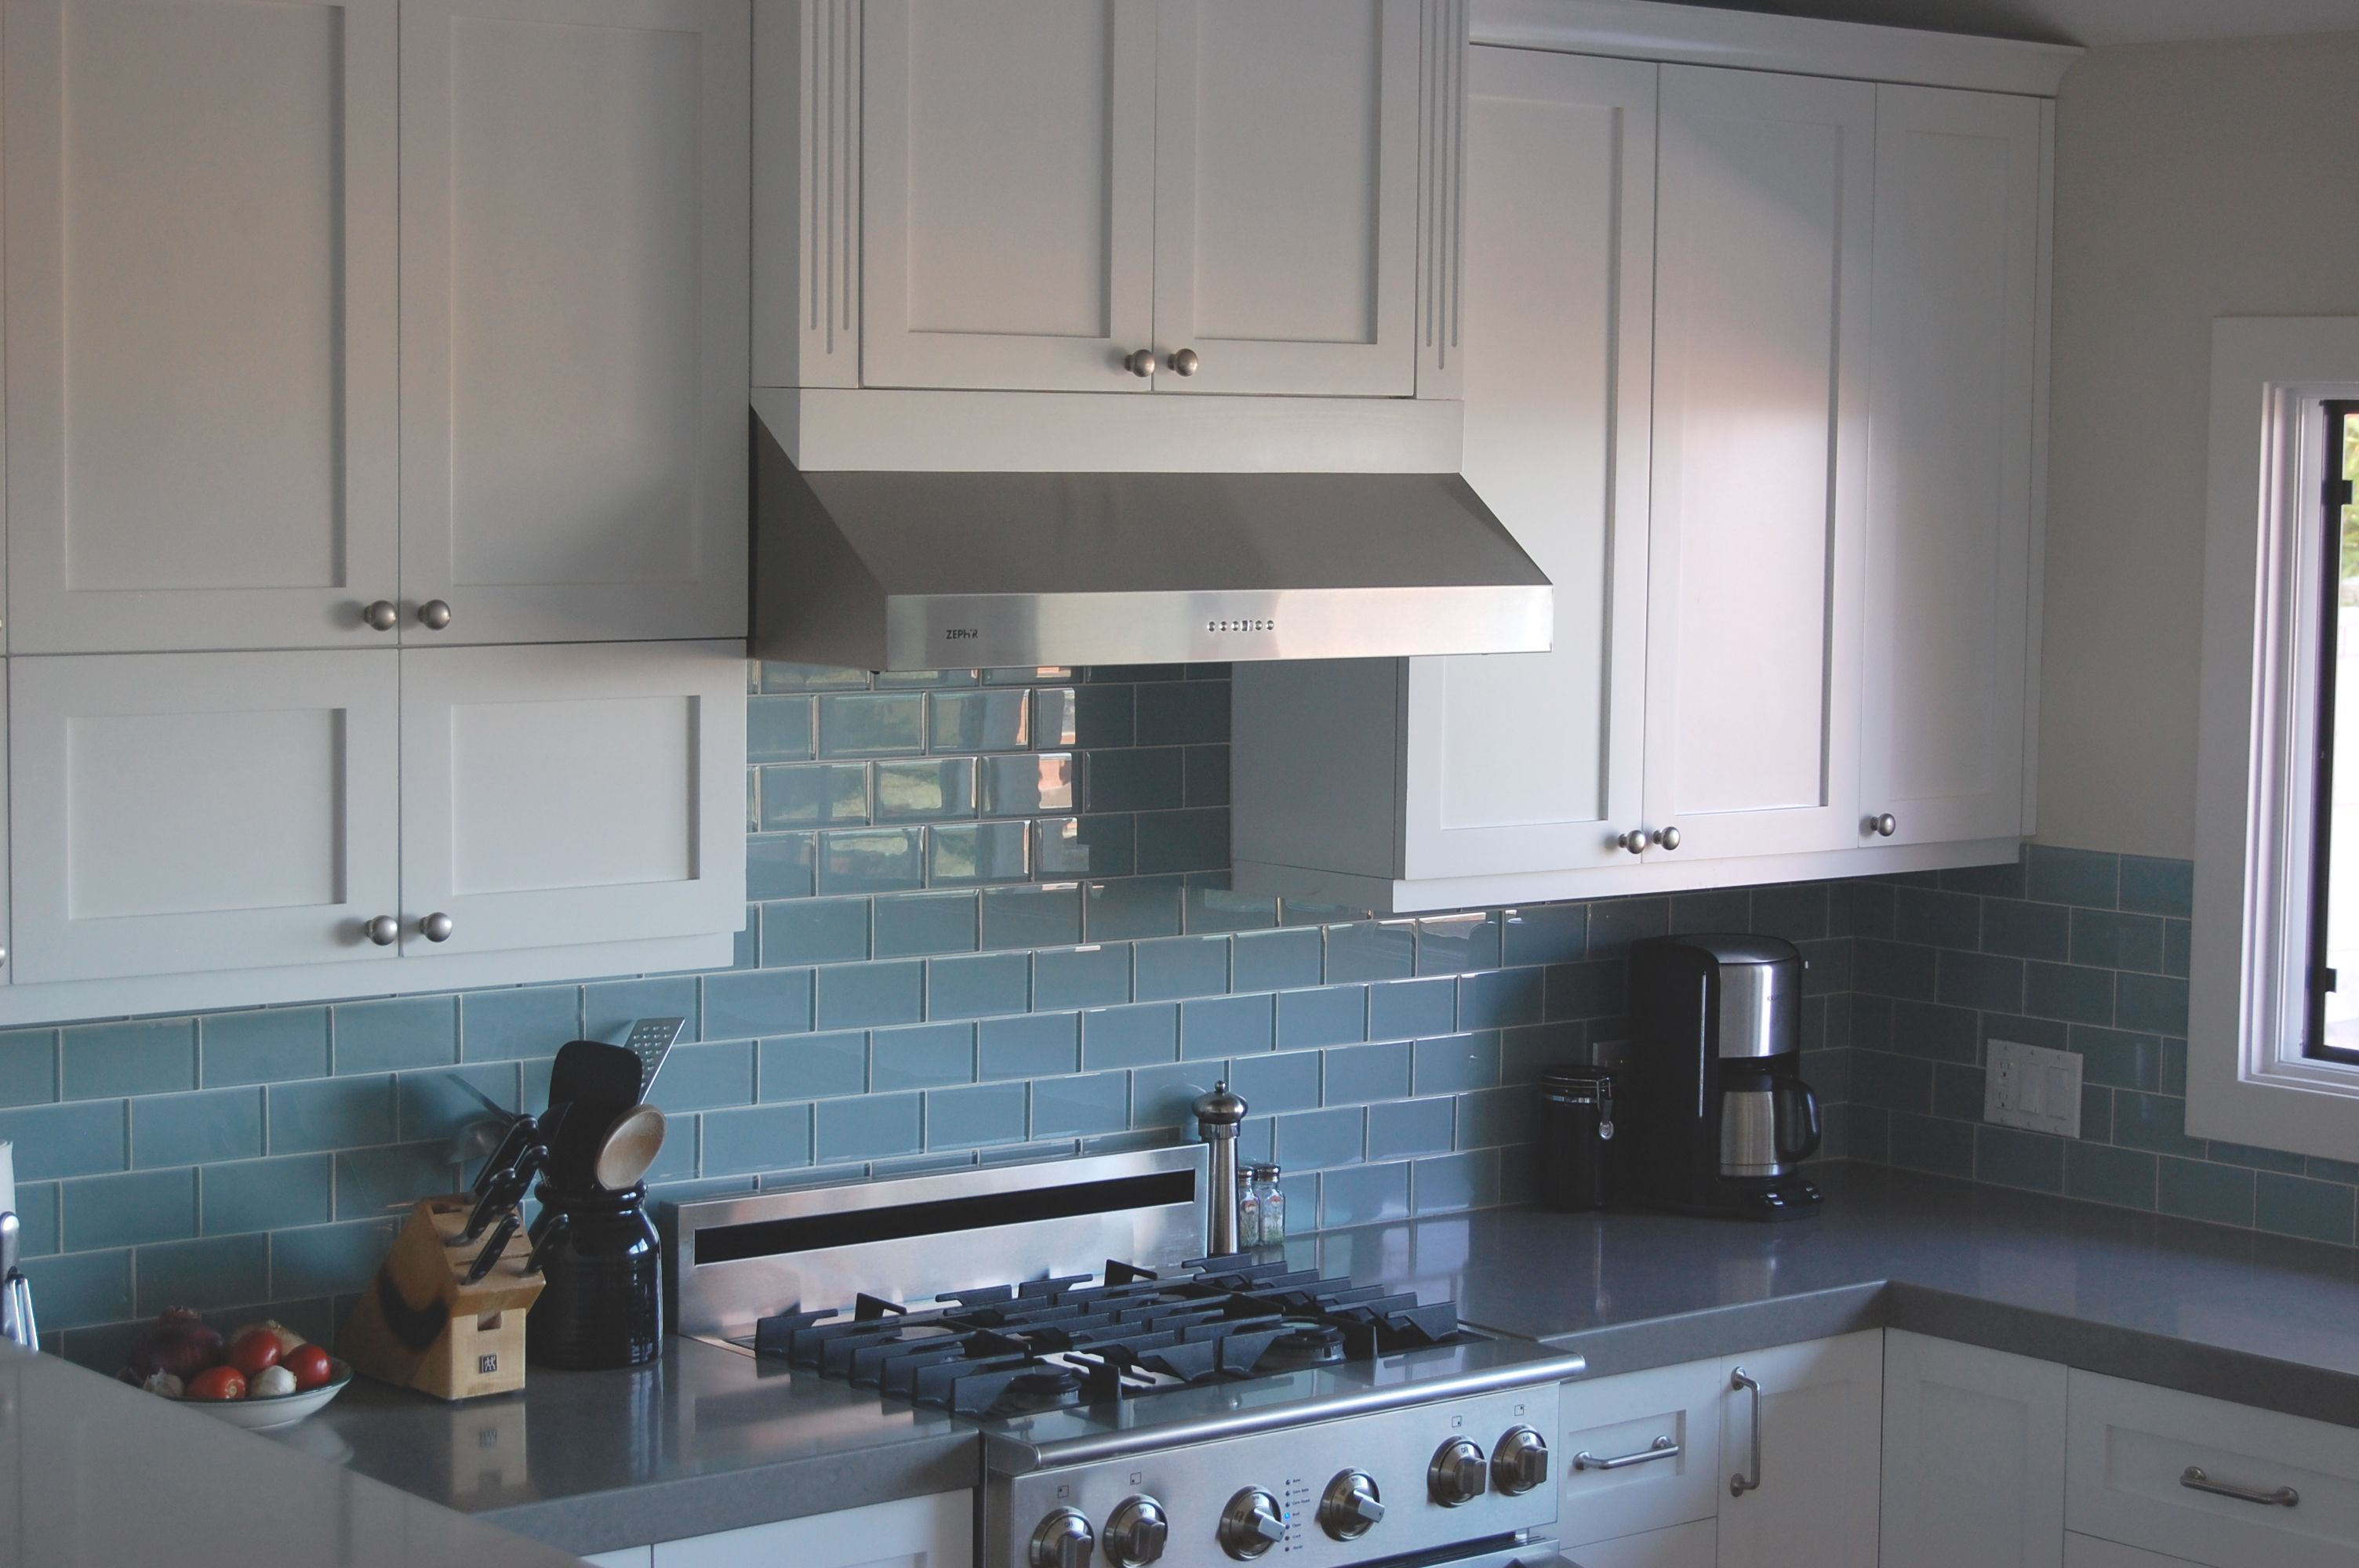 Kitchen Design Subway Tile Backsplash Best Backsplash For Dark Cabinets Sky Blue Glass Subway